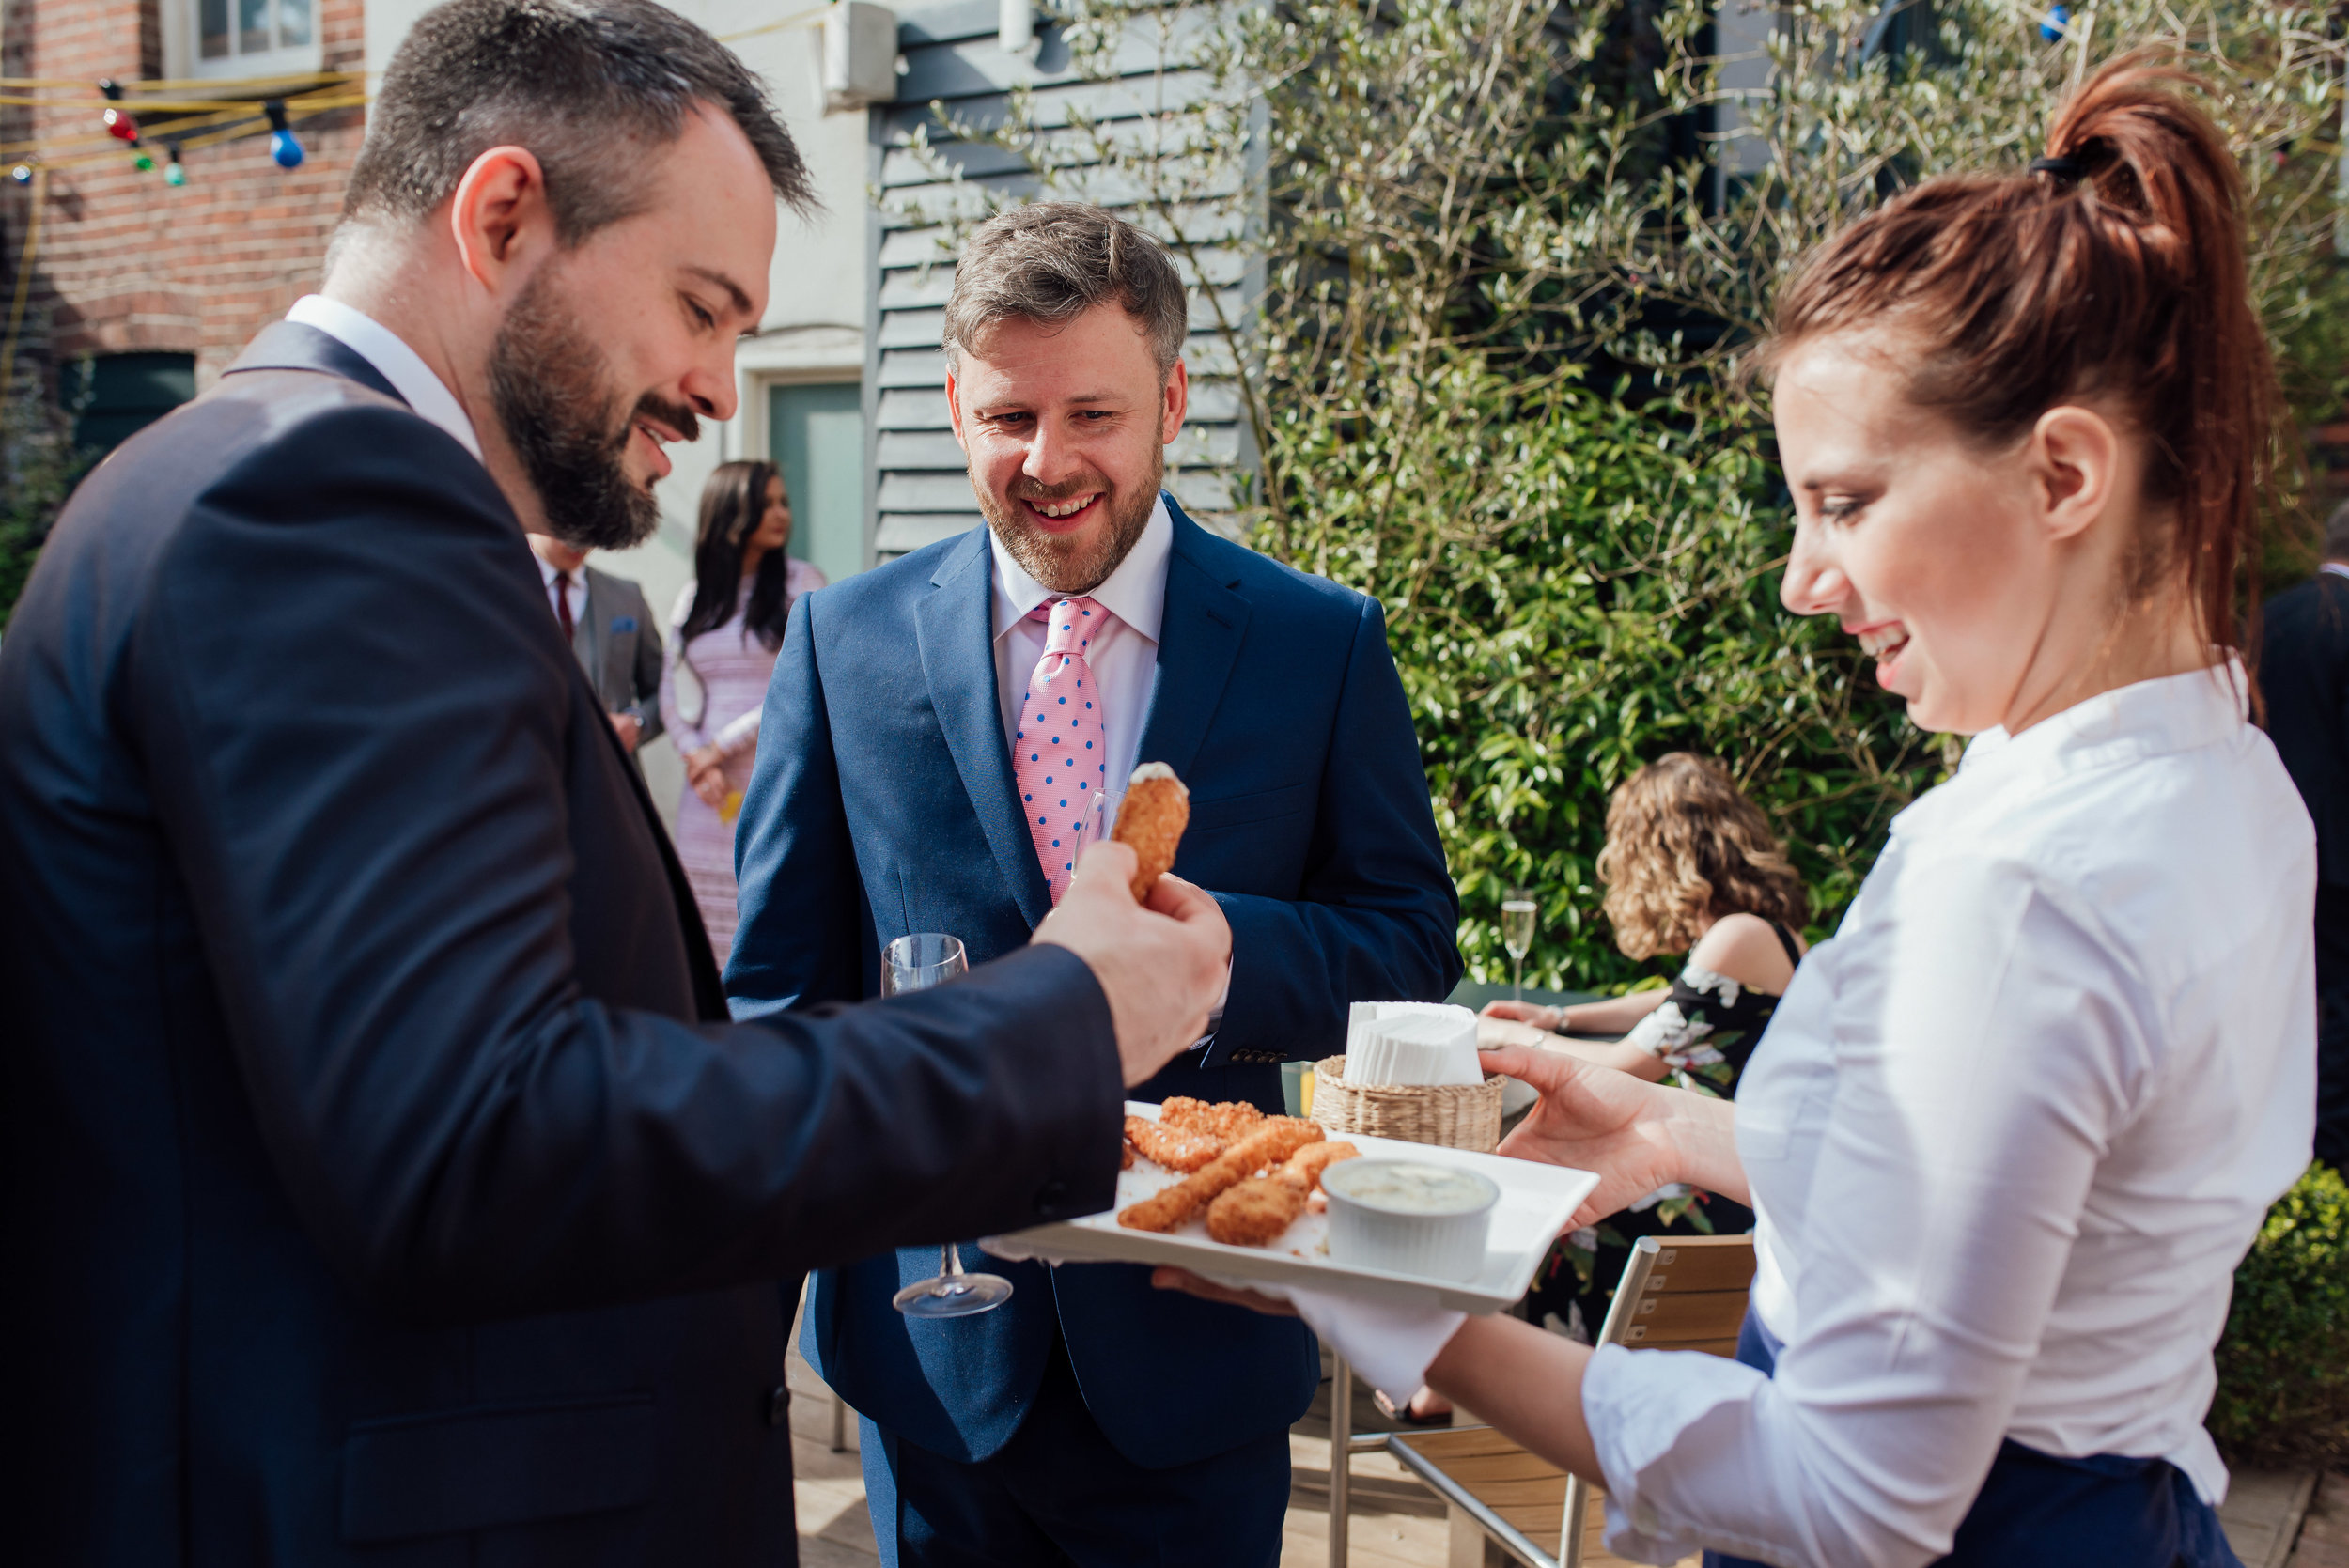 The George in Rye Wedding - East Sussex Wedding - Amy James Photography - Hampshire Wedding Photographer - Documentary Wedding Photography - Fun wedding photography - Surrey and Berkshire wedding photography - fun wedding photographer